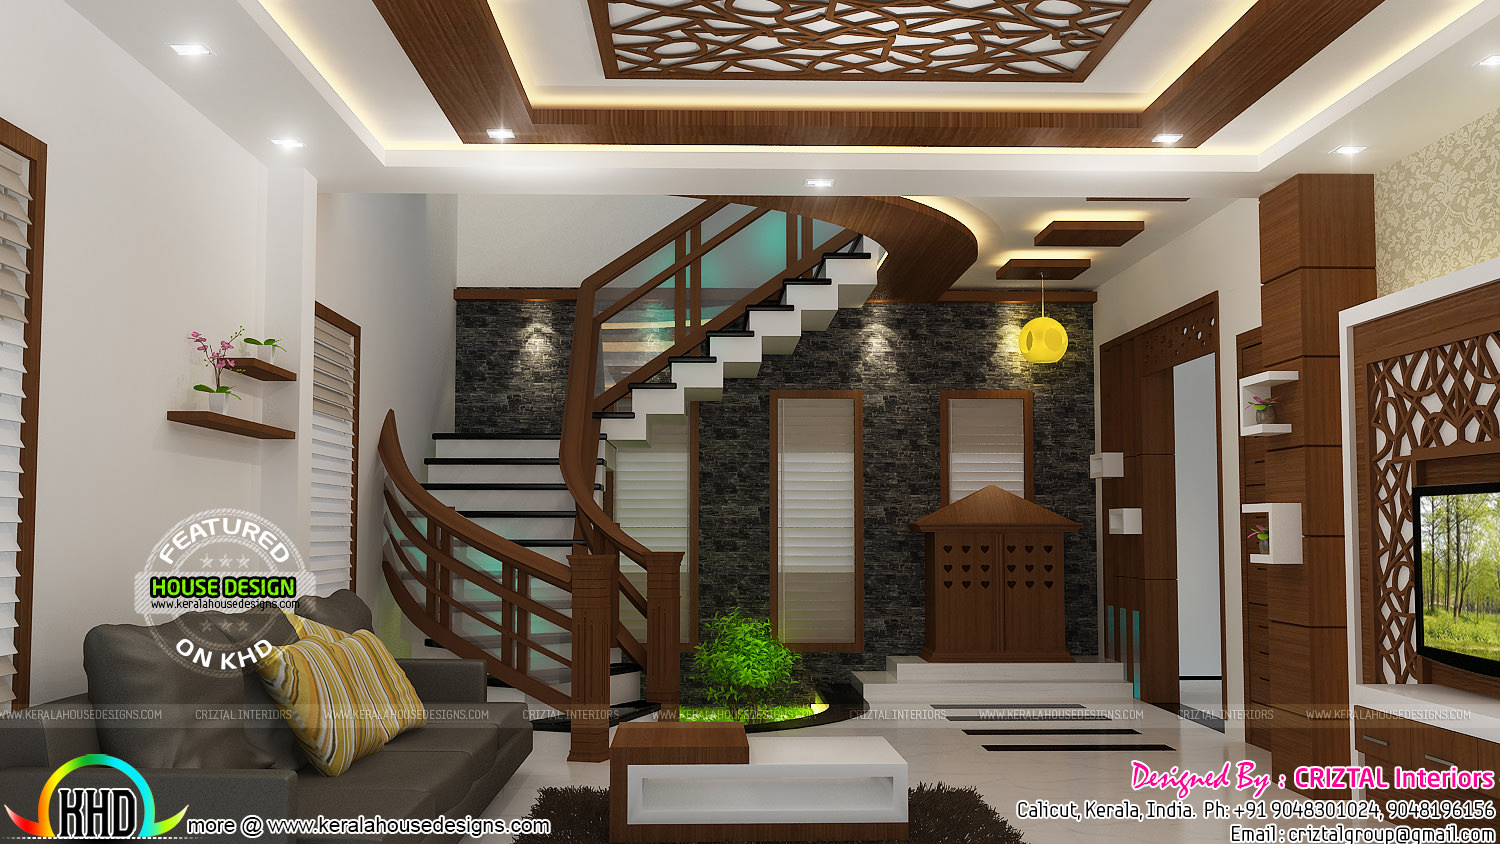 Bedroom dining hall and living interior kerala home for Living hall design